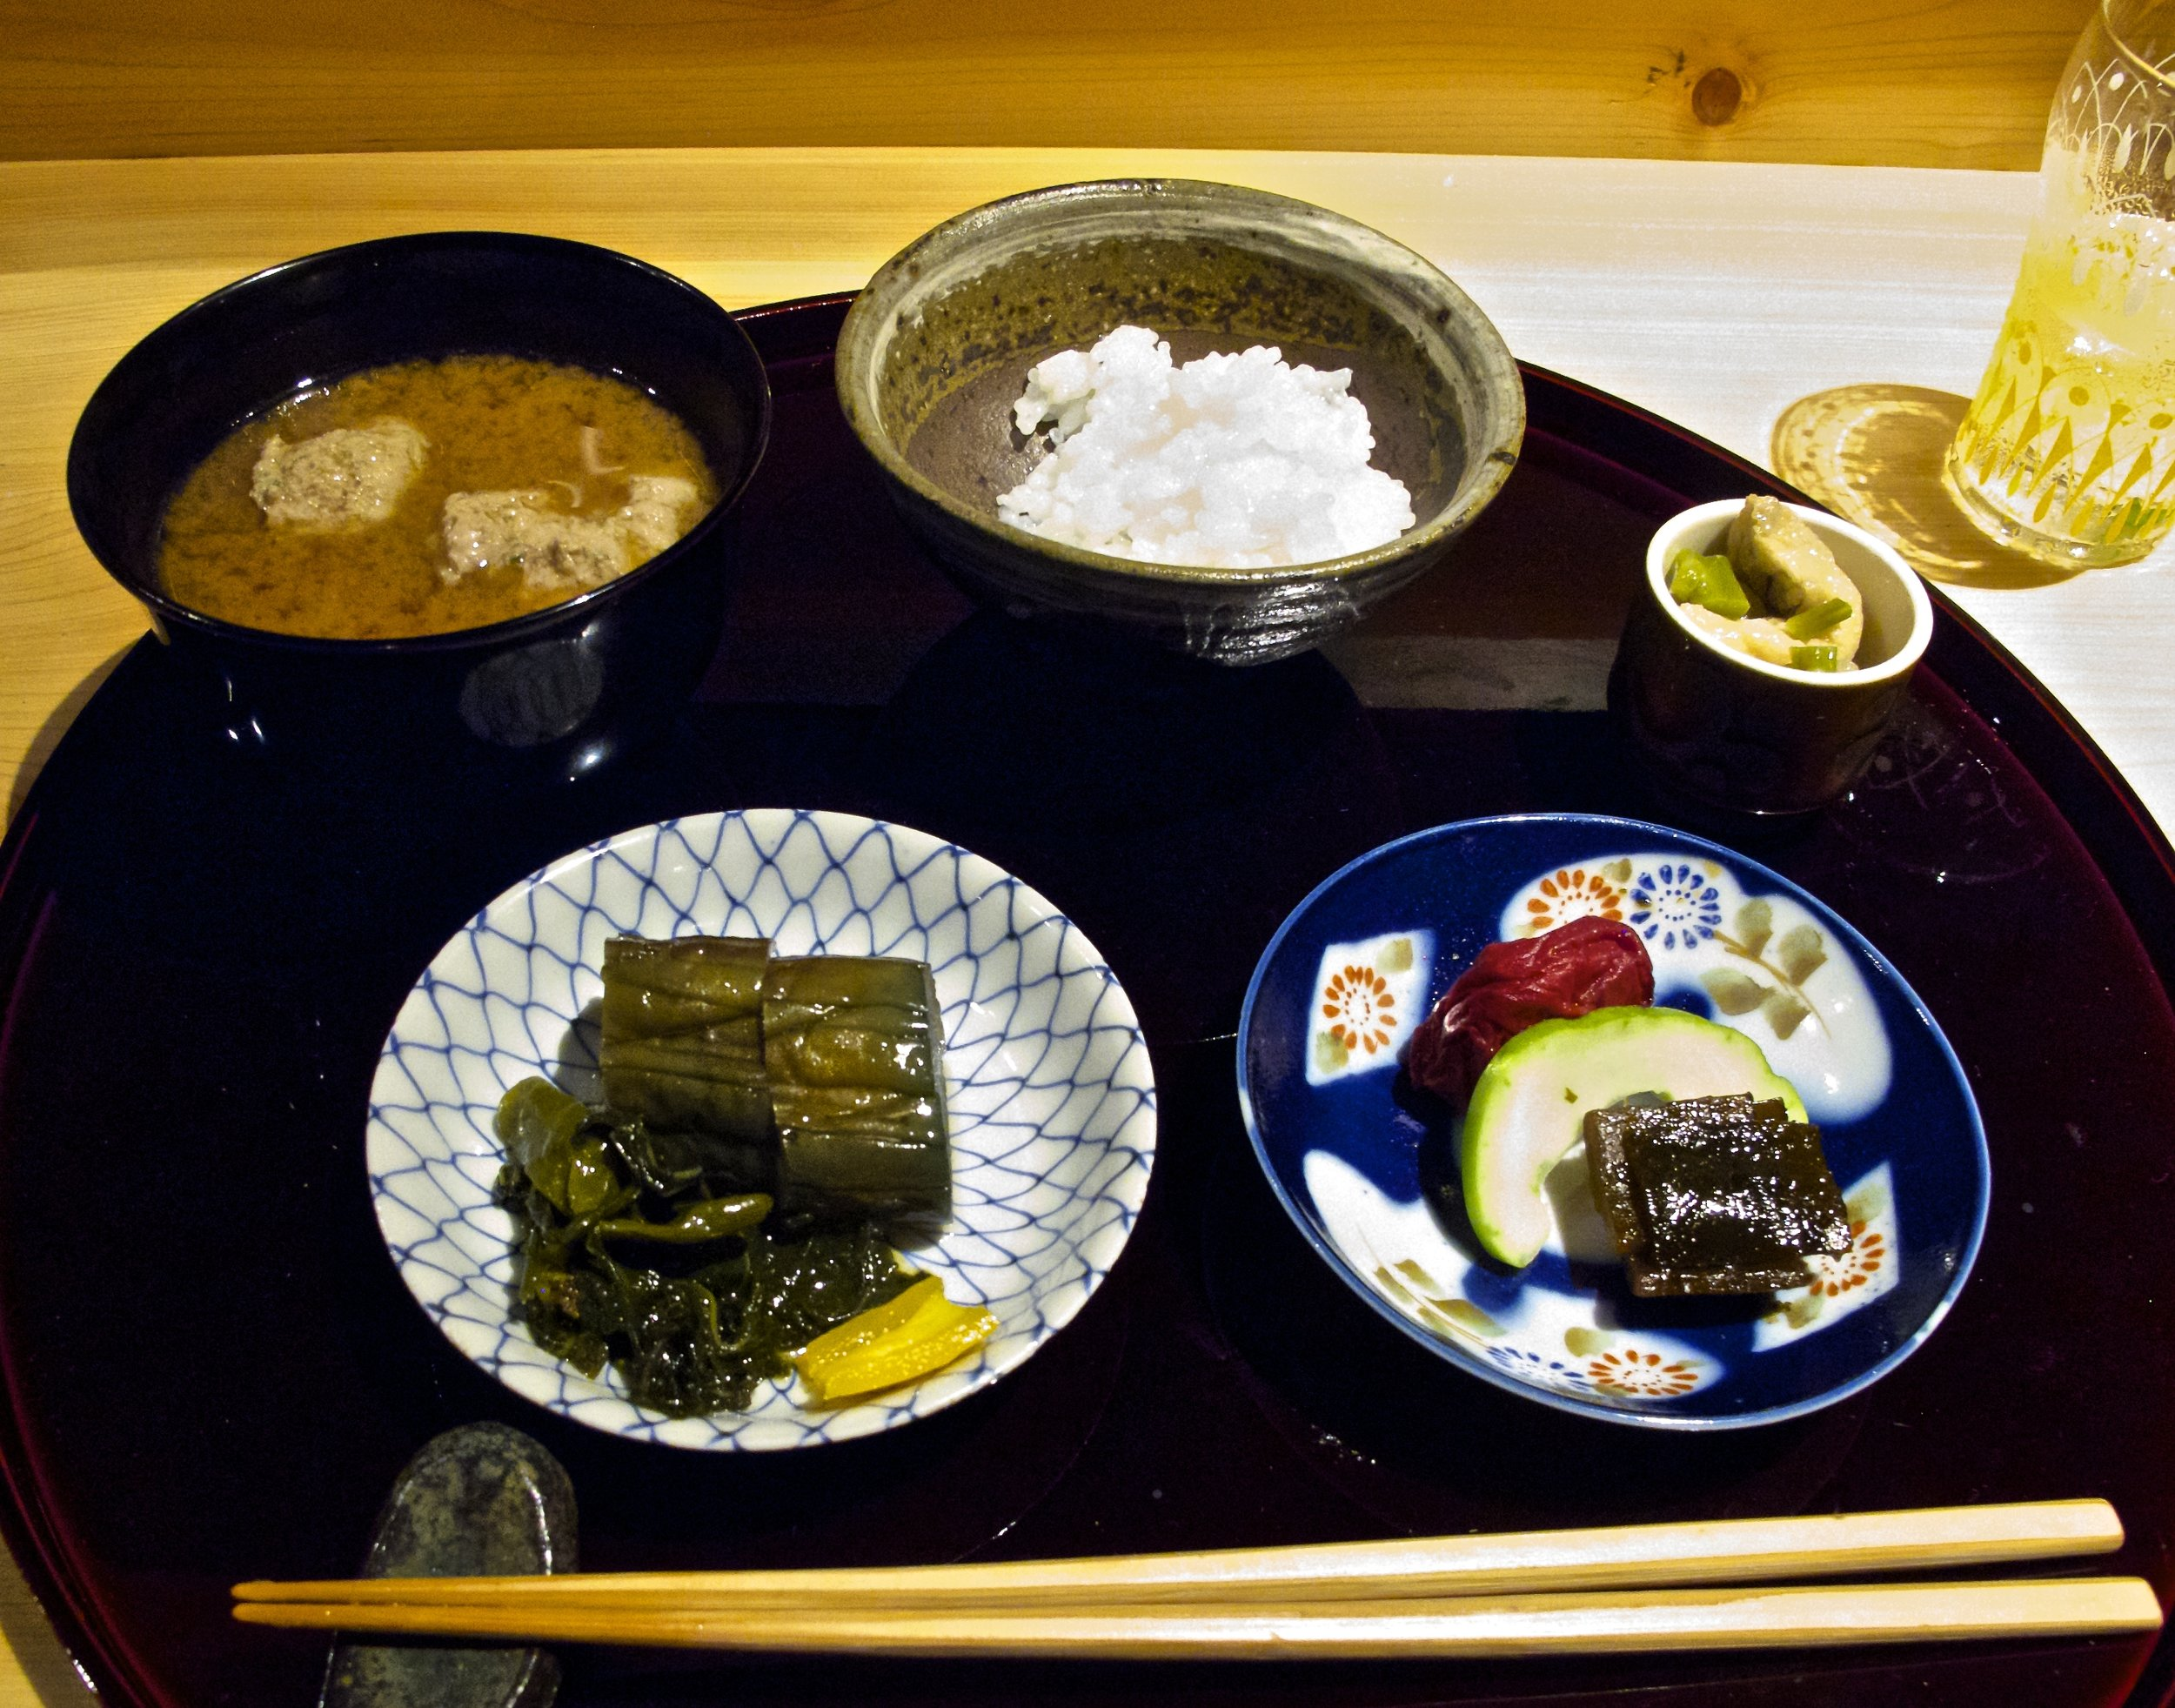 Tome-wan (止椀) & Ko-no-Mono (香の物) - The rice, soup, and pickles course of a Japanese meal is considered the main course, with everything that came before it being appetizers. This is definitely true at Muroi, where this course is truly a meal in itself. The rice, which is as much as you want, is grown across the road at Higuchi Farm. Its quality is evidenced by how iridescently shiny it is. The soup is a deeply satisfying strong red miso soup filled with meatballs made of duck raised on Mt. Katsuragi in Nara prefecture.